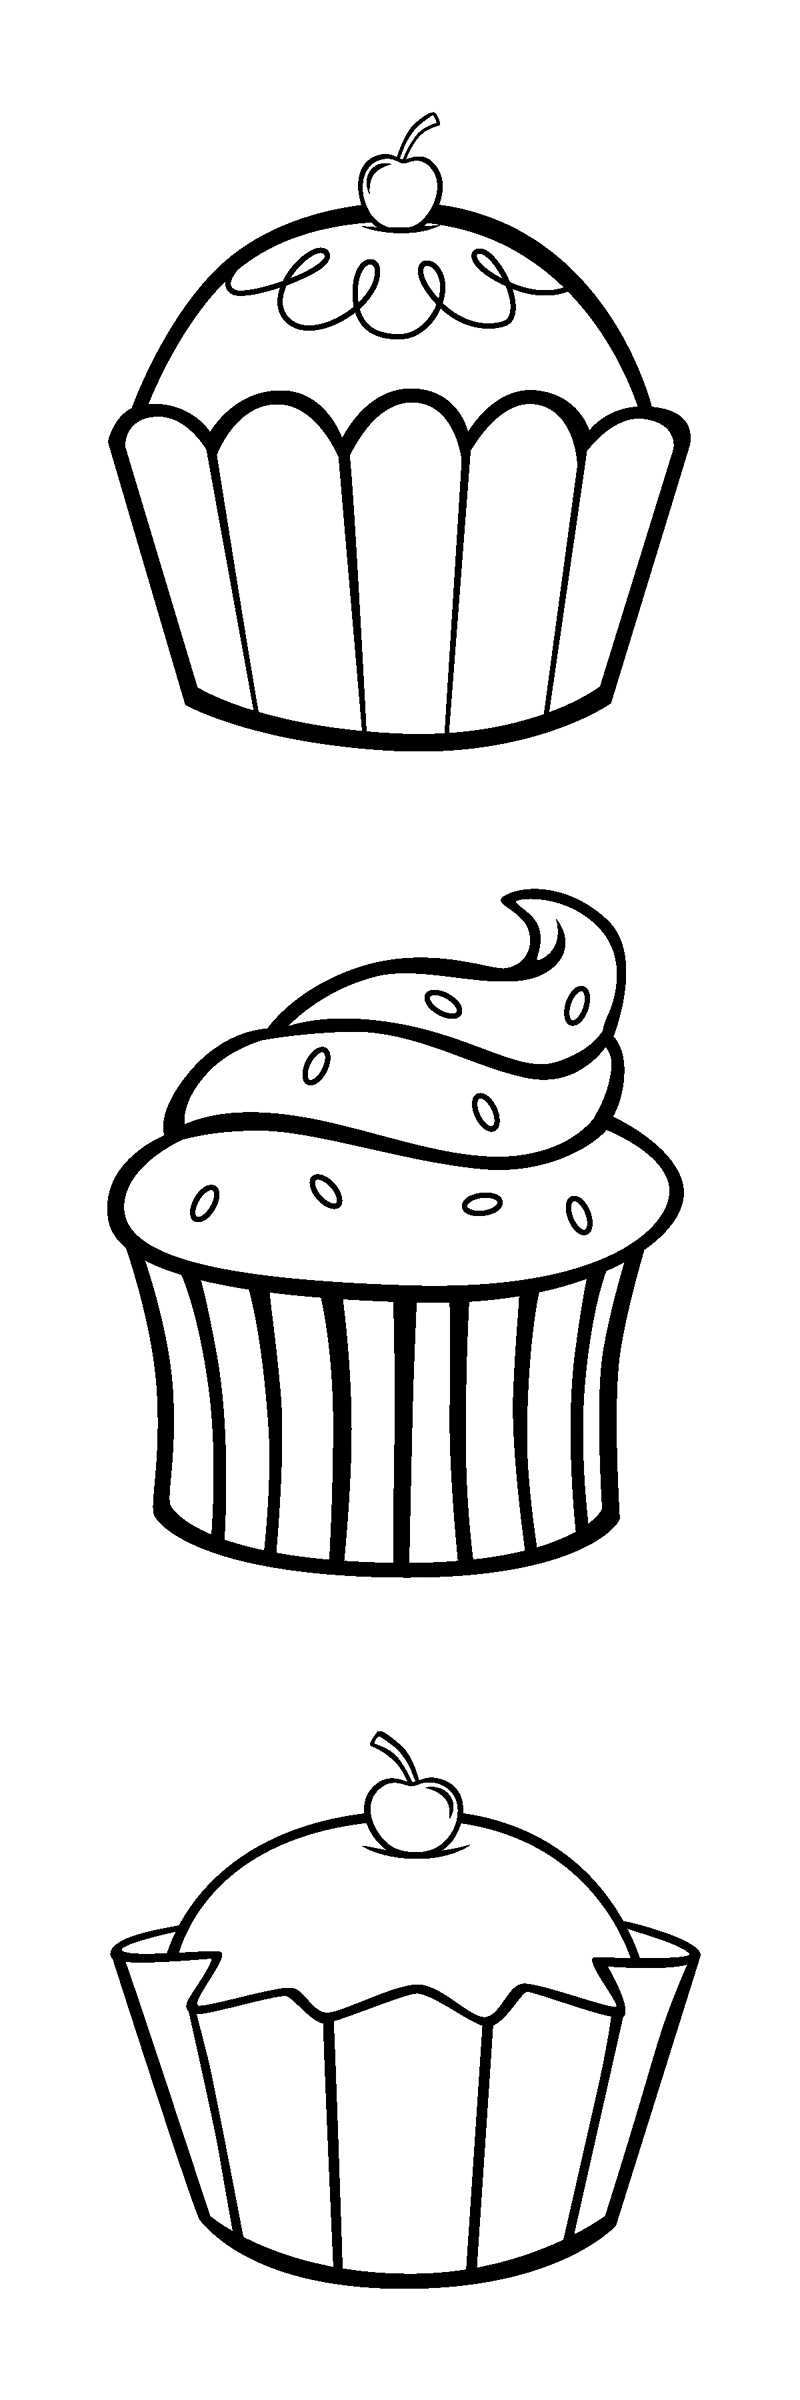 If You Can Print This Pic Of Cupcakes Cuz Their Easy And Fun To Colour Or Draw At All Ages Coloring Pages Embroidery Patterns Embroidery